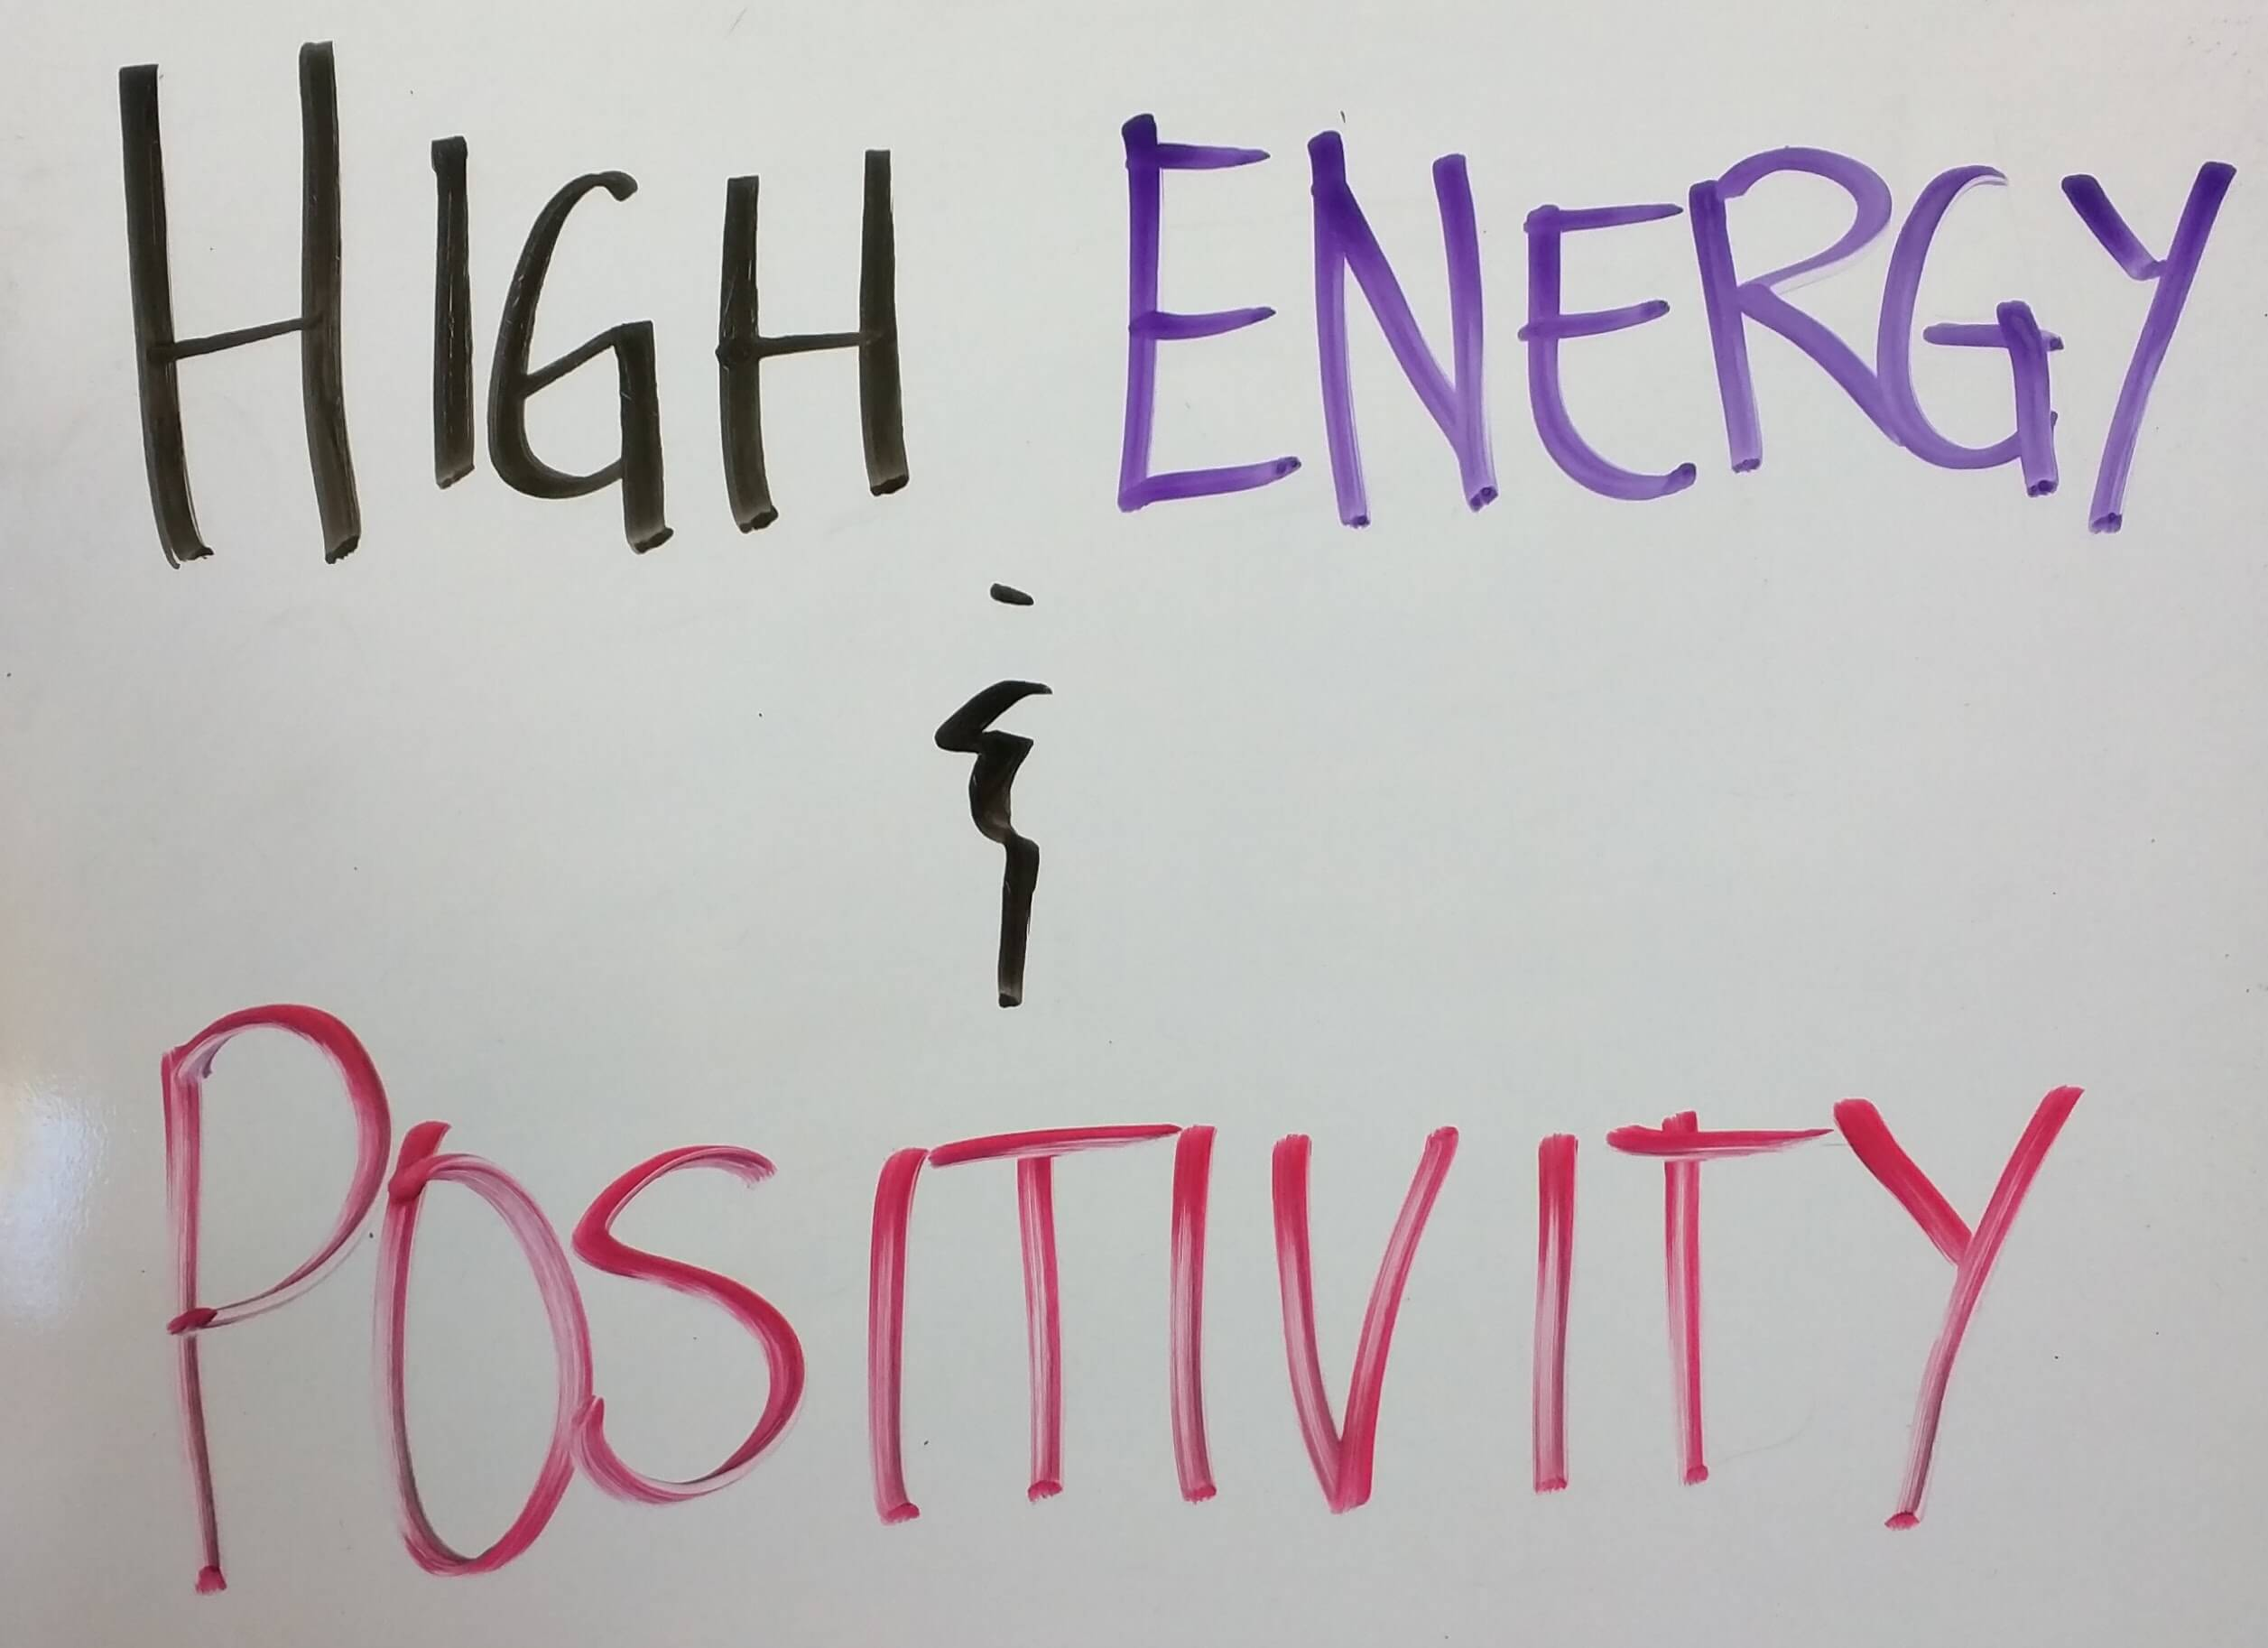 HighEnergyandPositivity